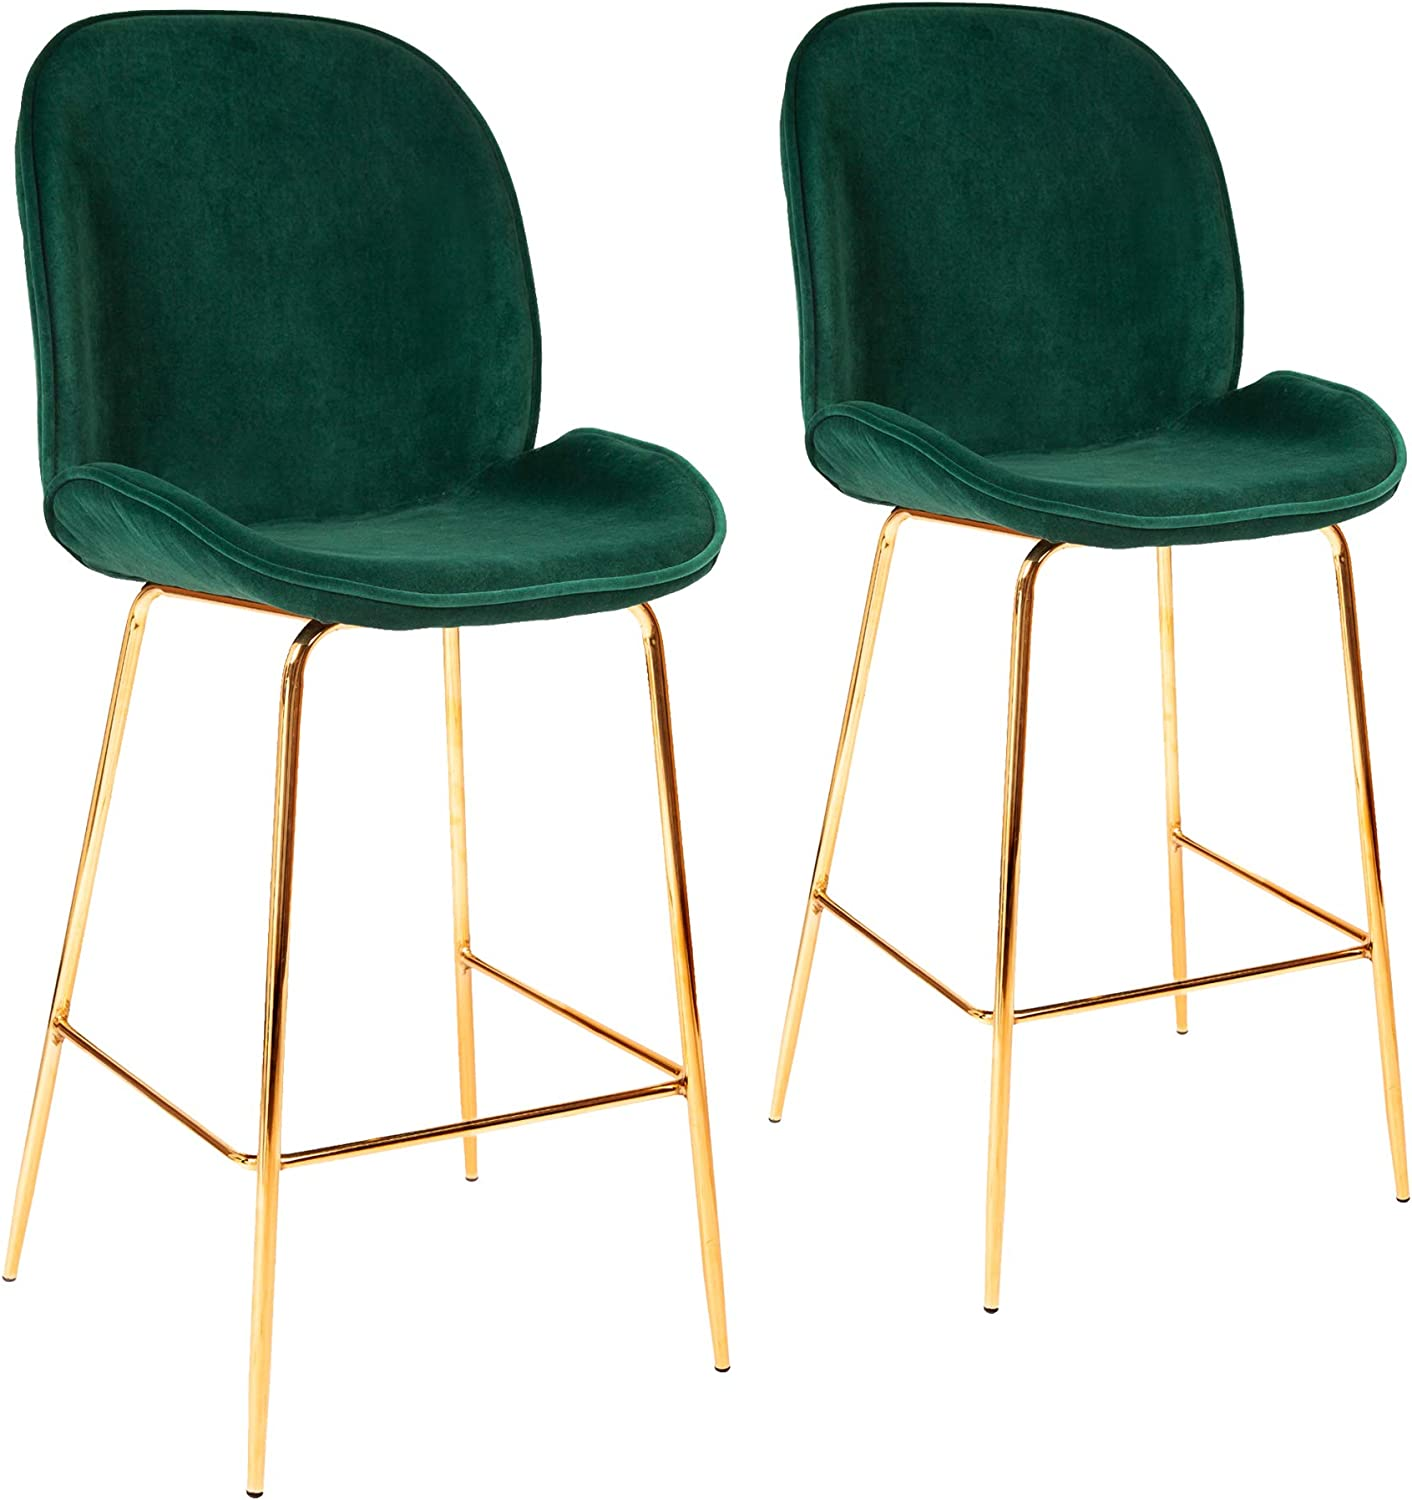 all about chair Set of 2 Green Velvet Bar Chairs Bar Stools for Restaurant Pub Home Kitchen Dining Room